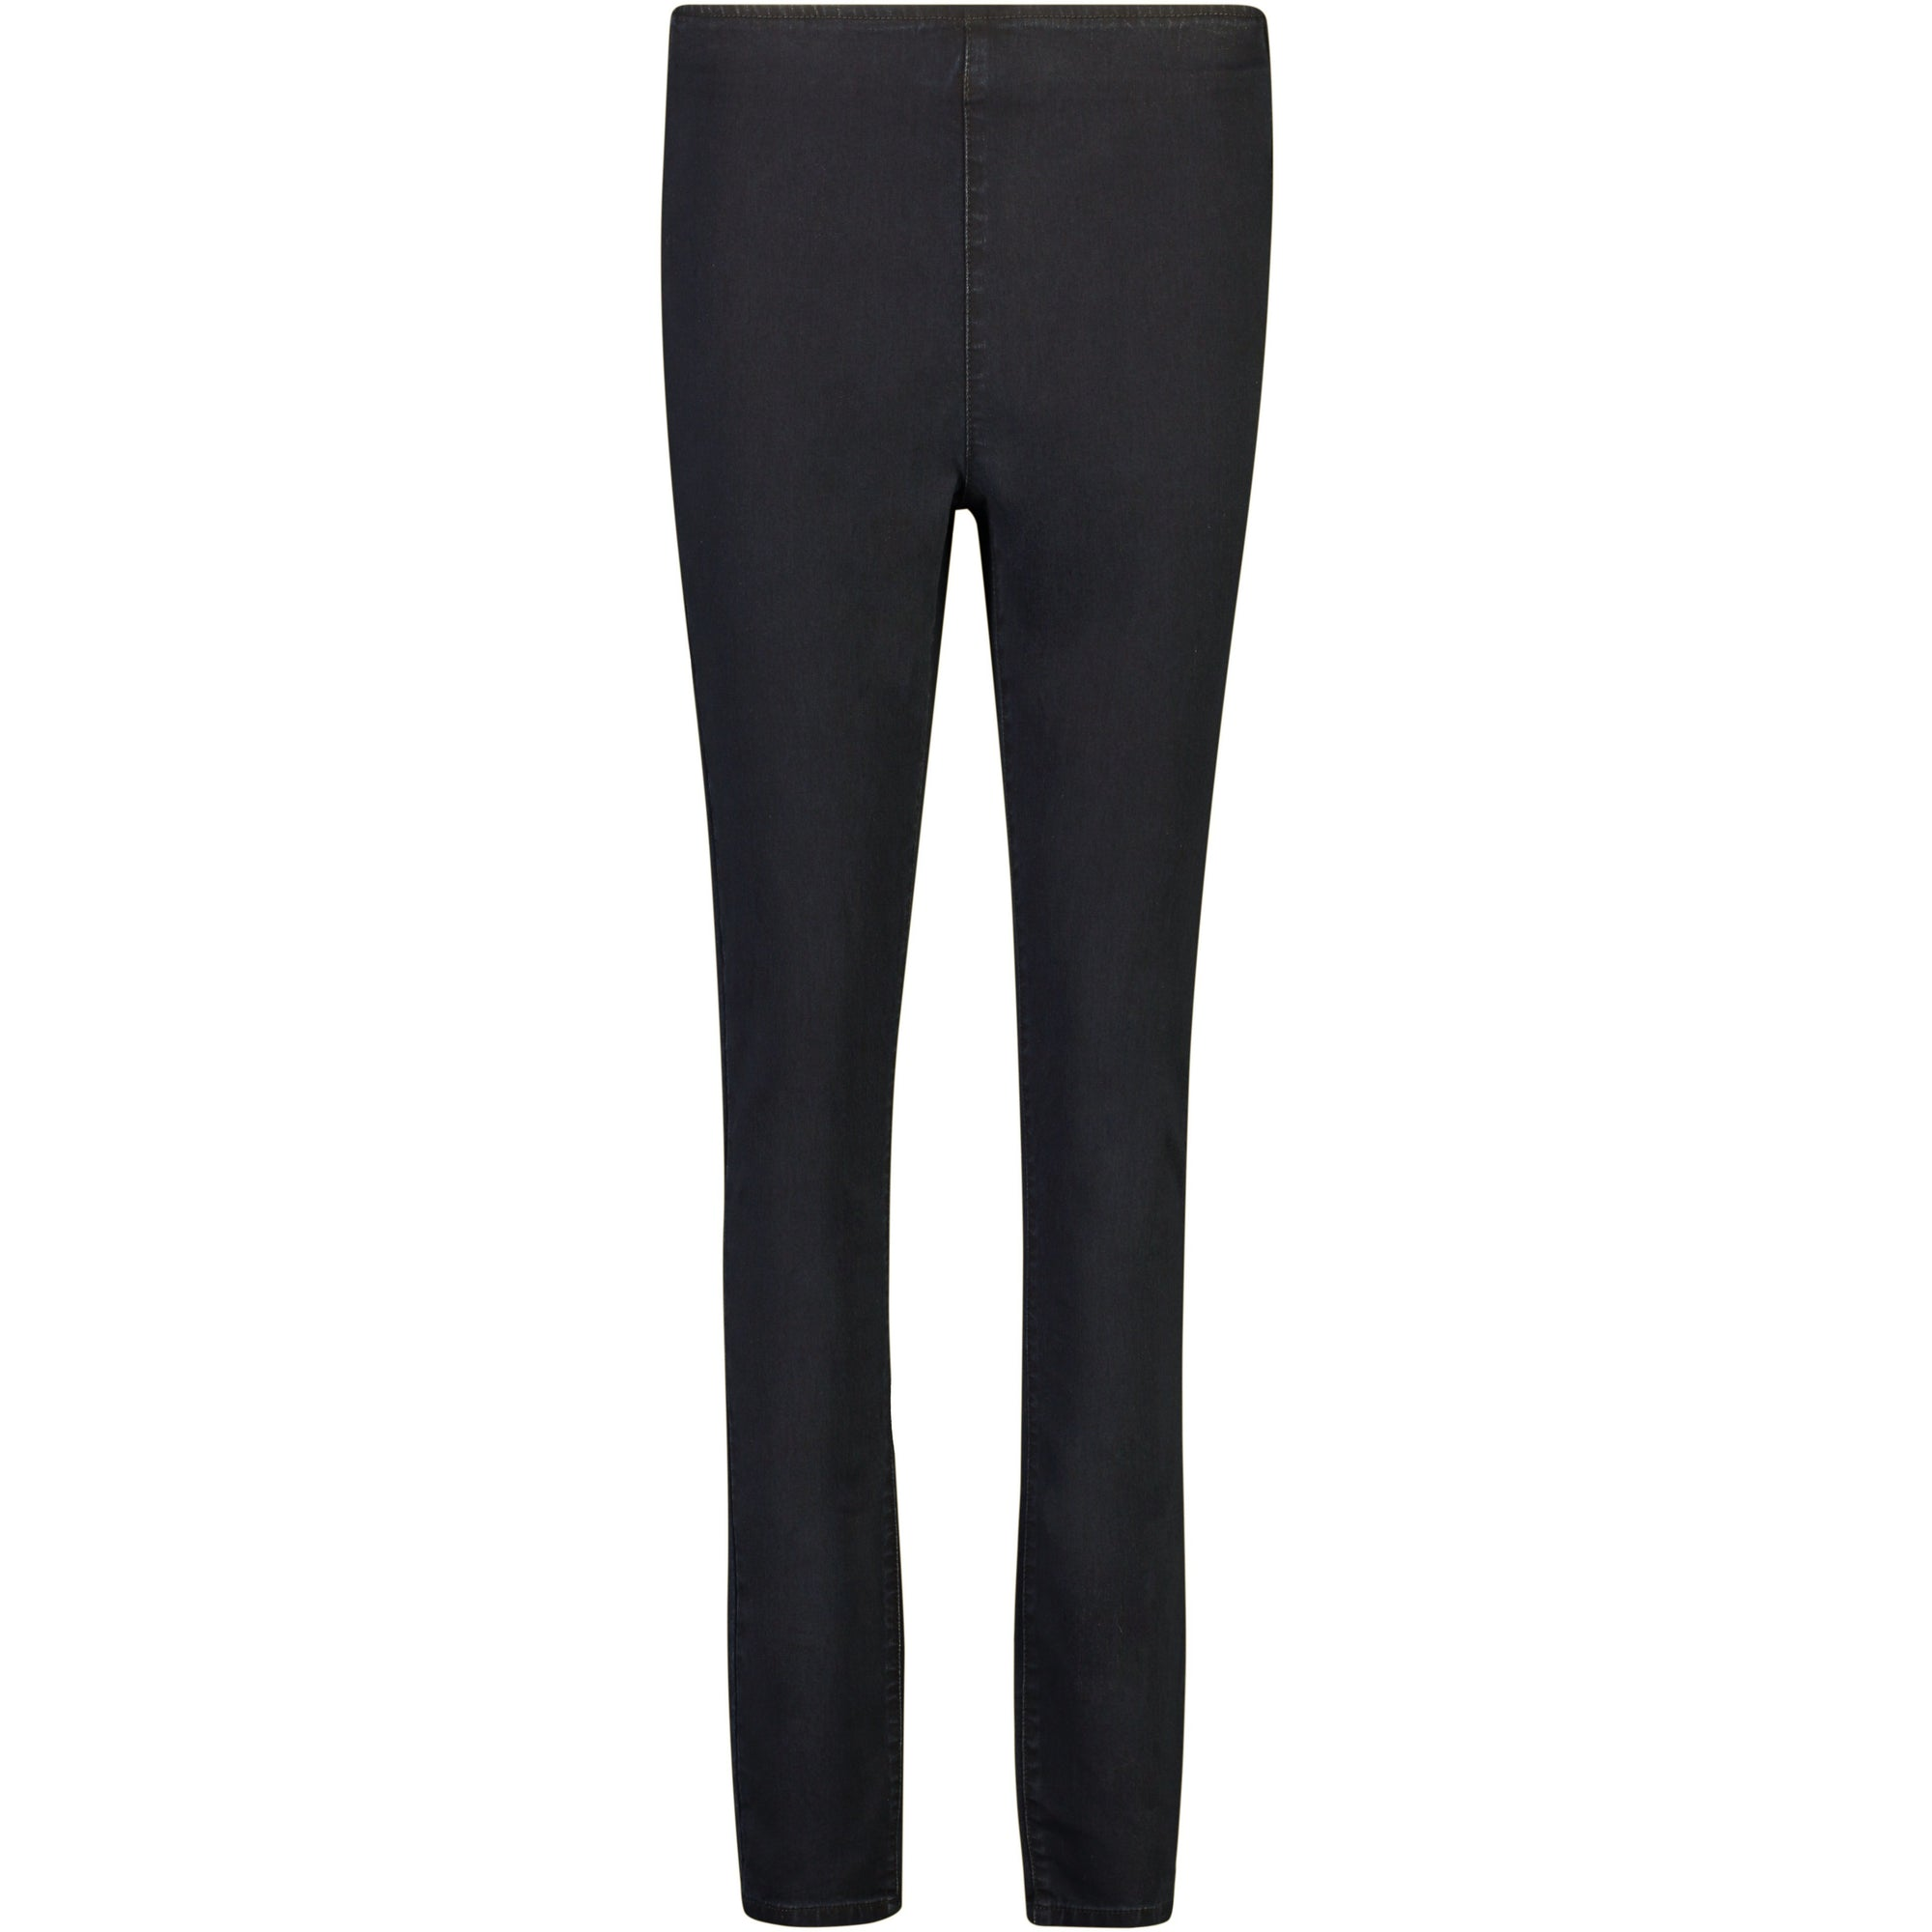 Foil That's Thin-Credible Jeggings in Black Wash